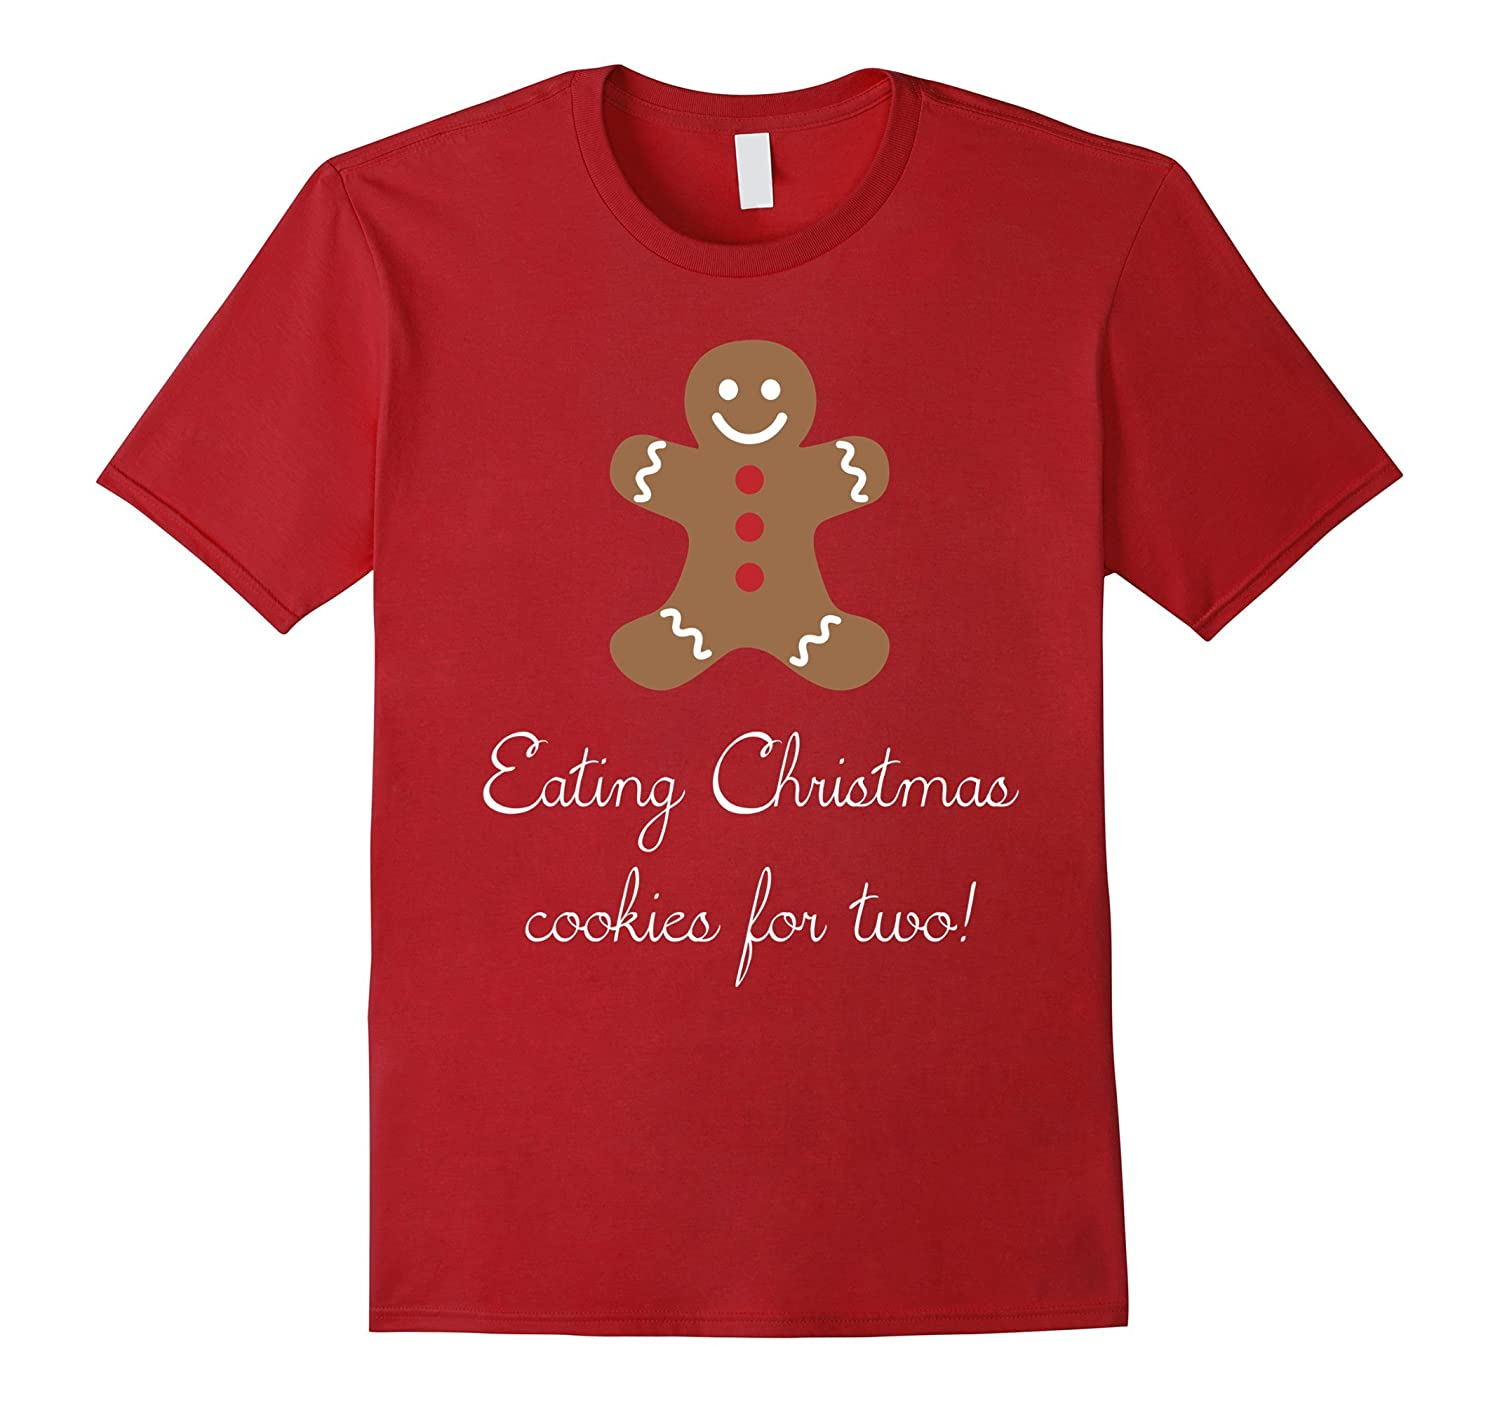 d95aa836 Funny Christmas Pregnancy Shirt - Christmas Cookies for Two-ANZ ...